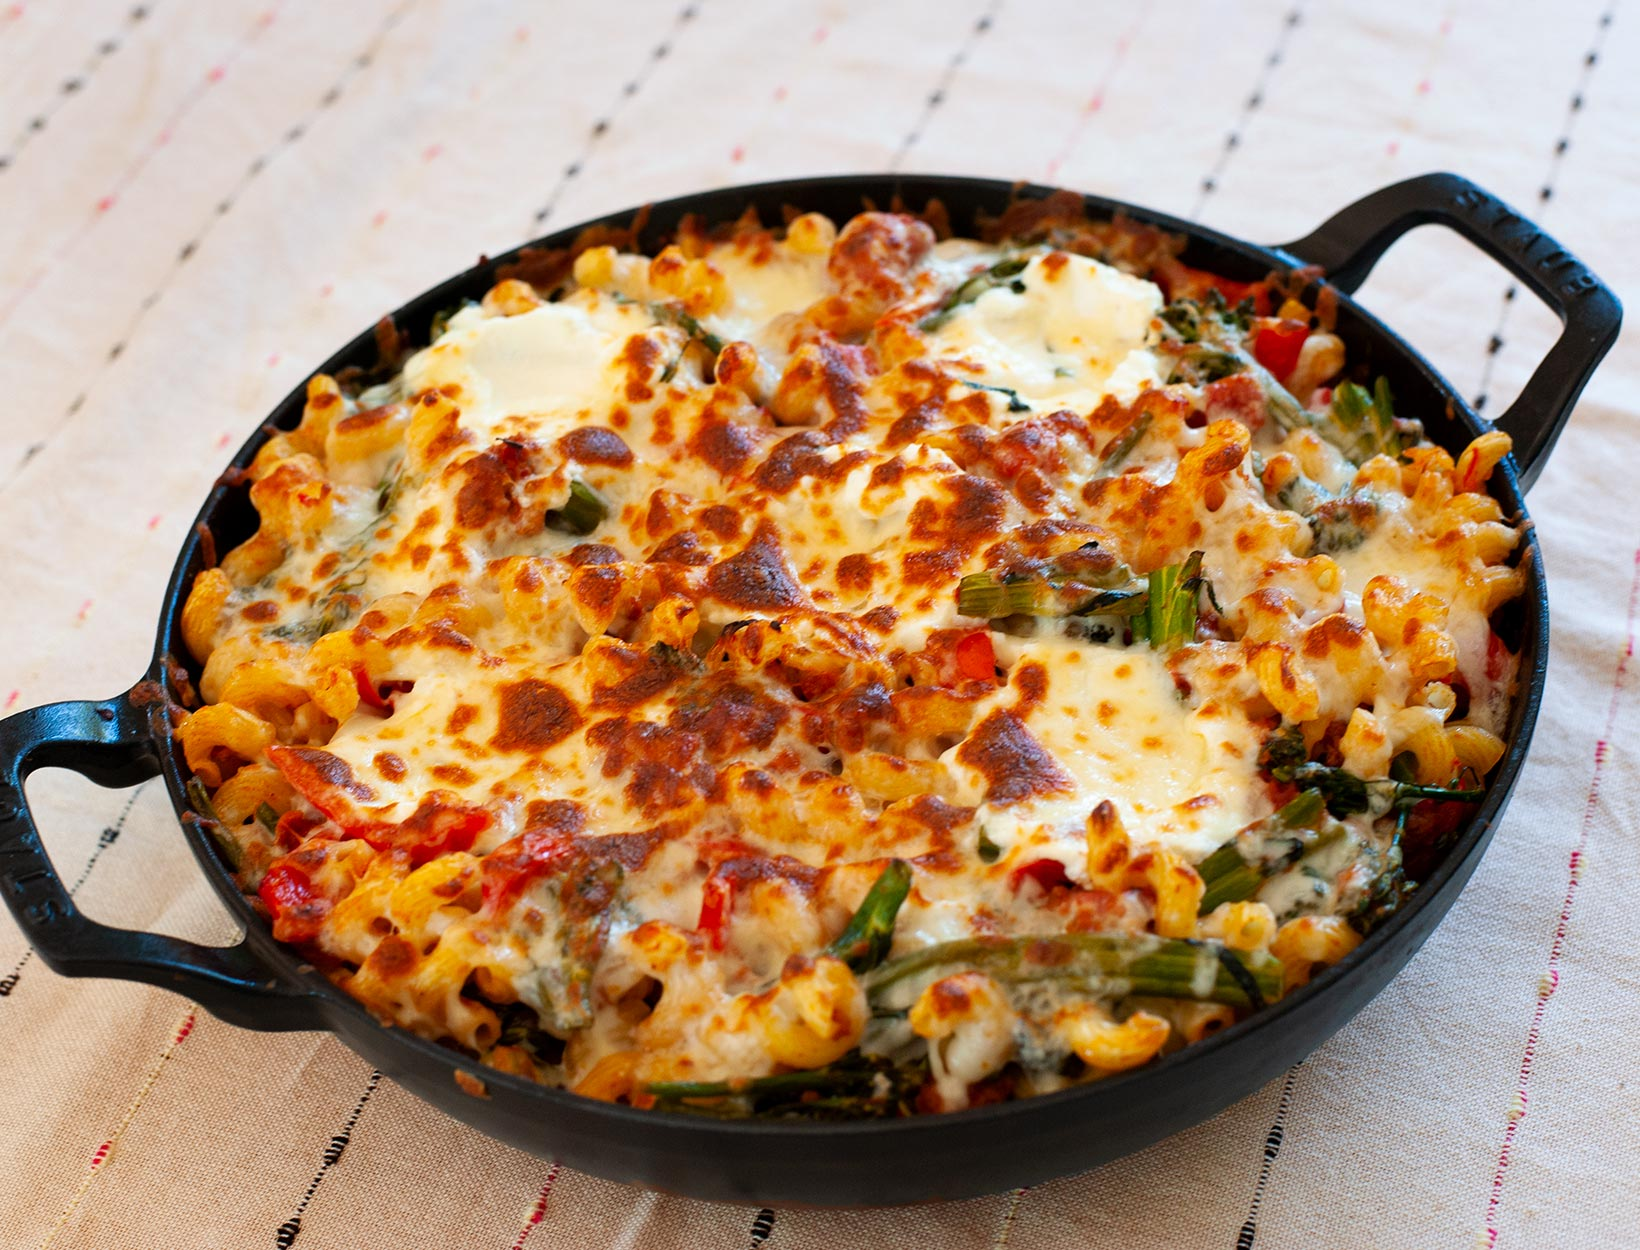 Baked Ziti with Sausage, Peppers, and Broccoli Rabe